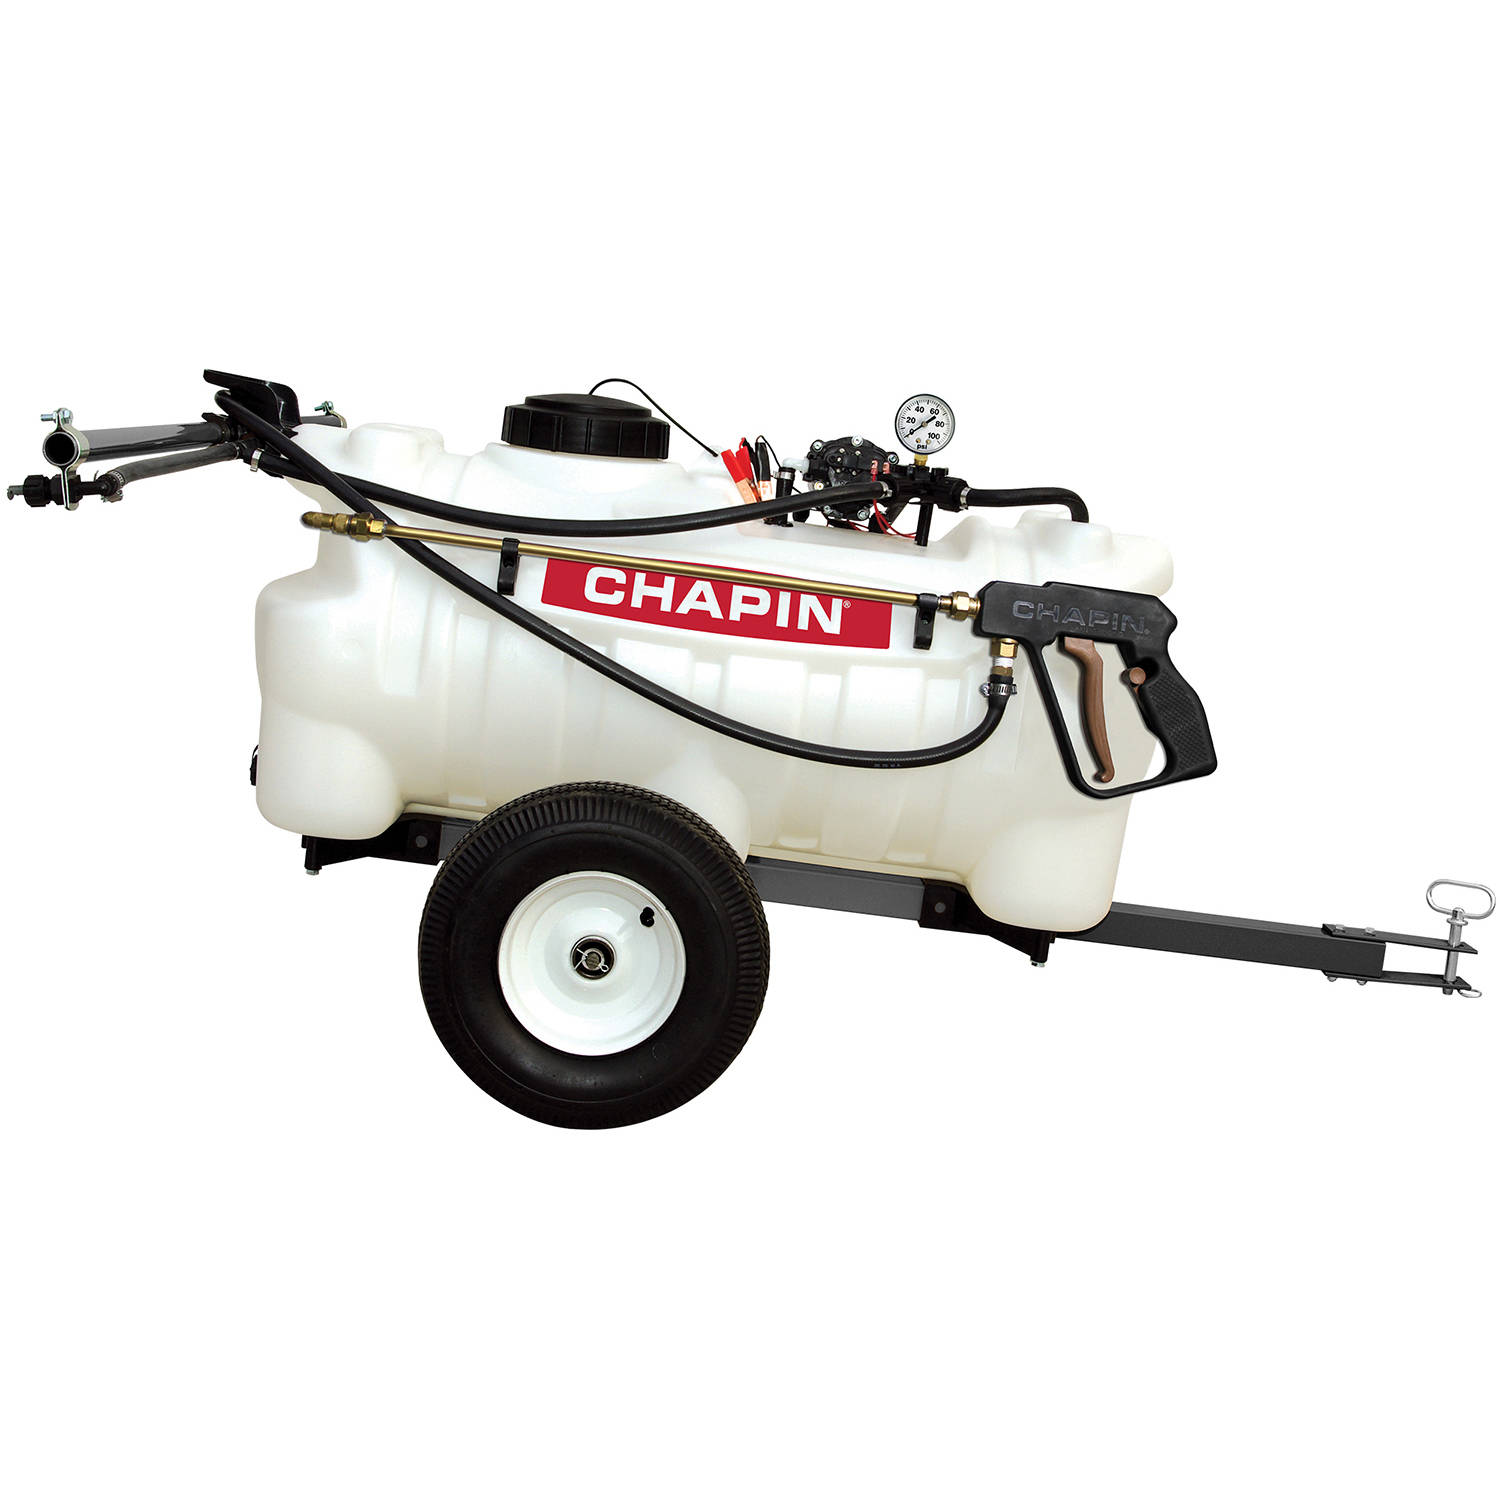 Chapin 97700 25-Gallon 12v EZ Tow Dripless Sprayer